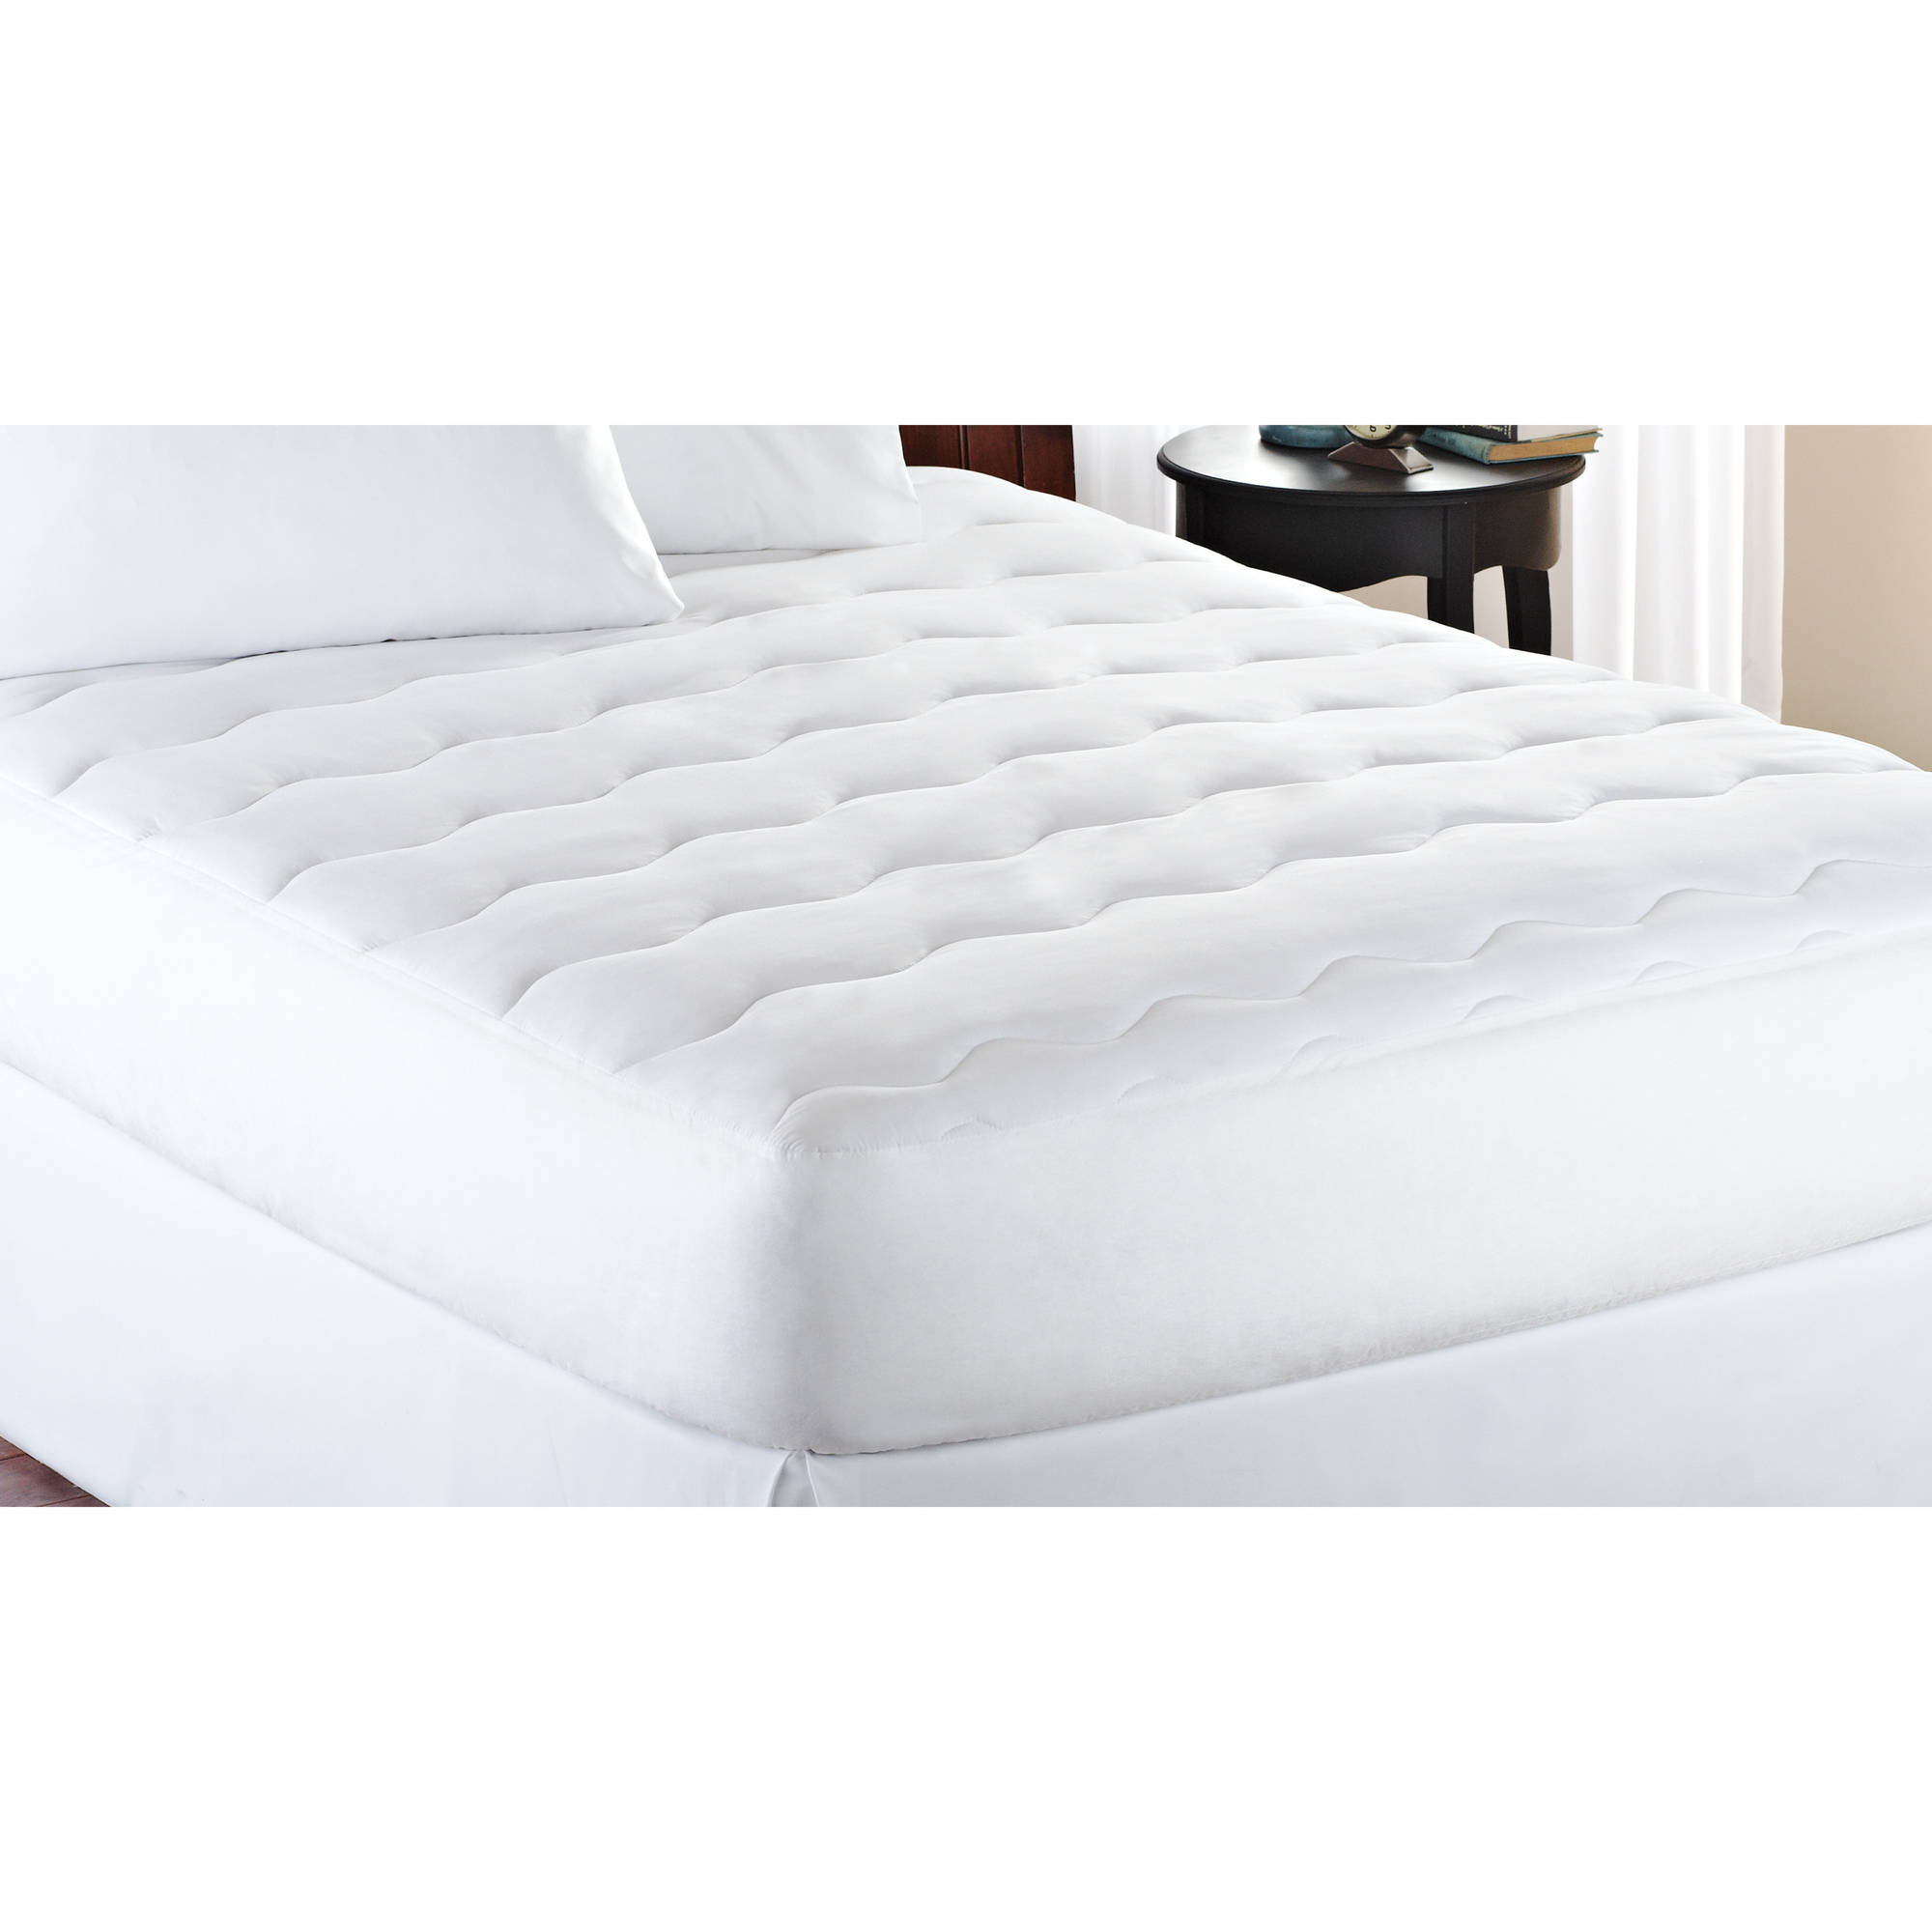 Cal King Size Mattress Pad Extra Thick White Padded Deep